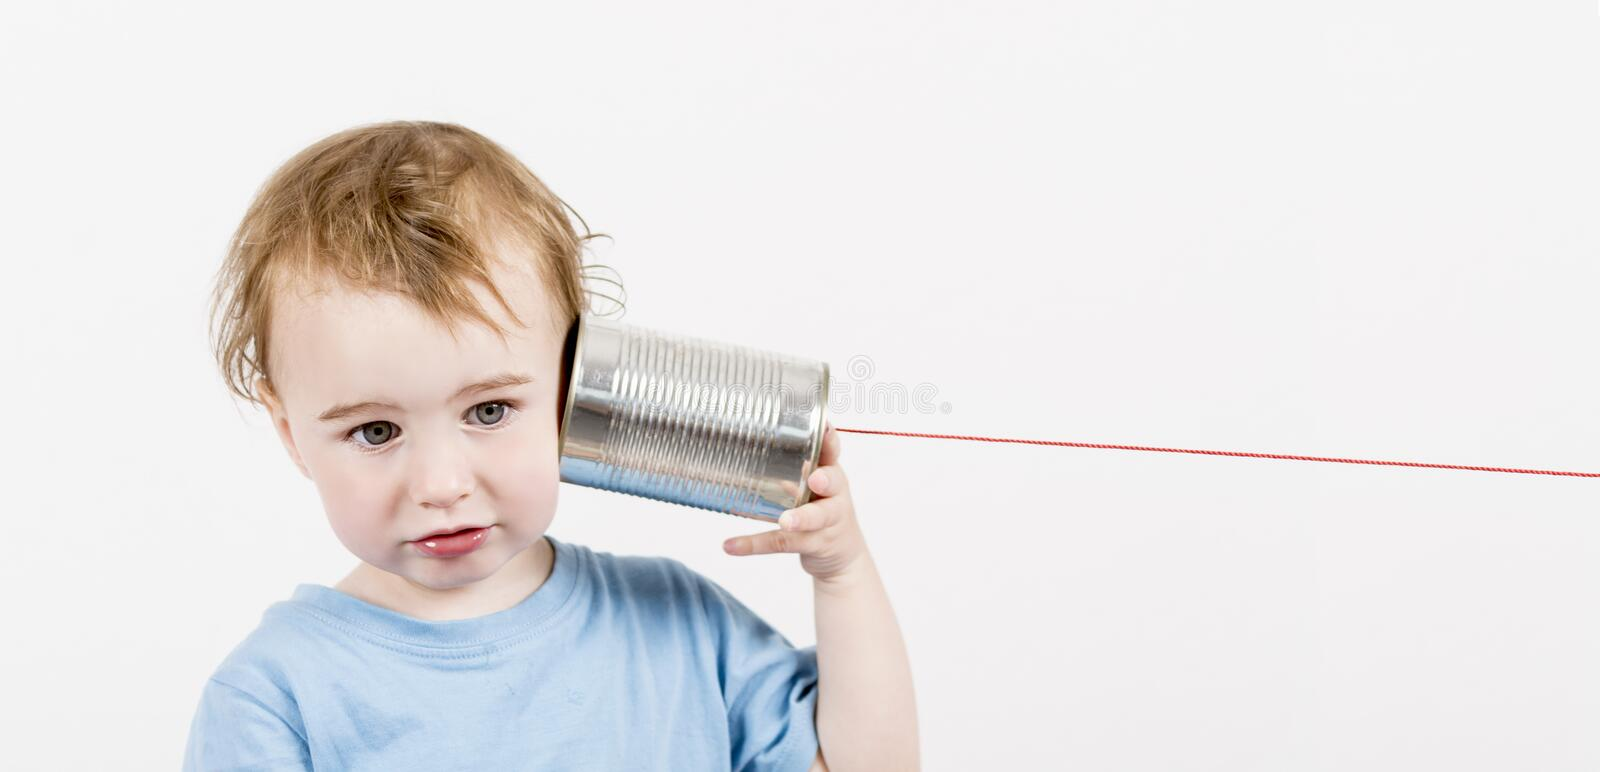 Child with tin can phone. Young, disappointed child listening to tin can phone. caucasian child in horizontal image royalty free stock photo